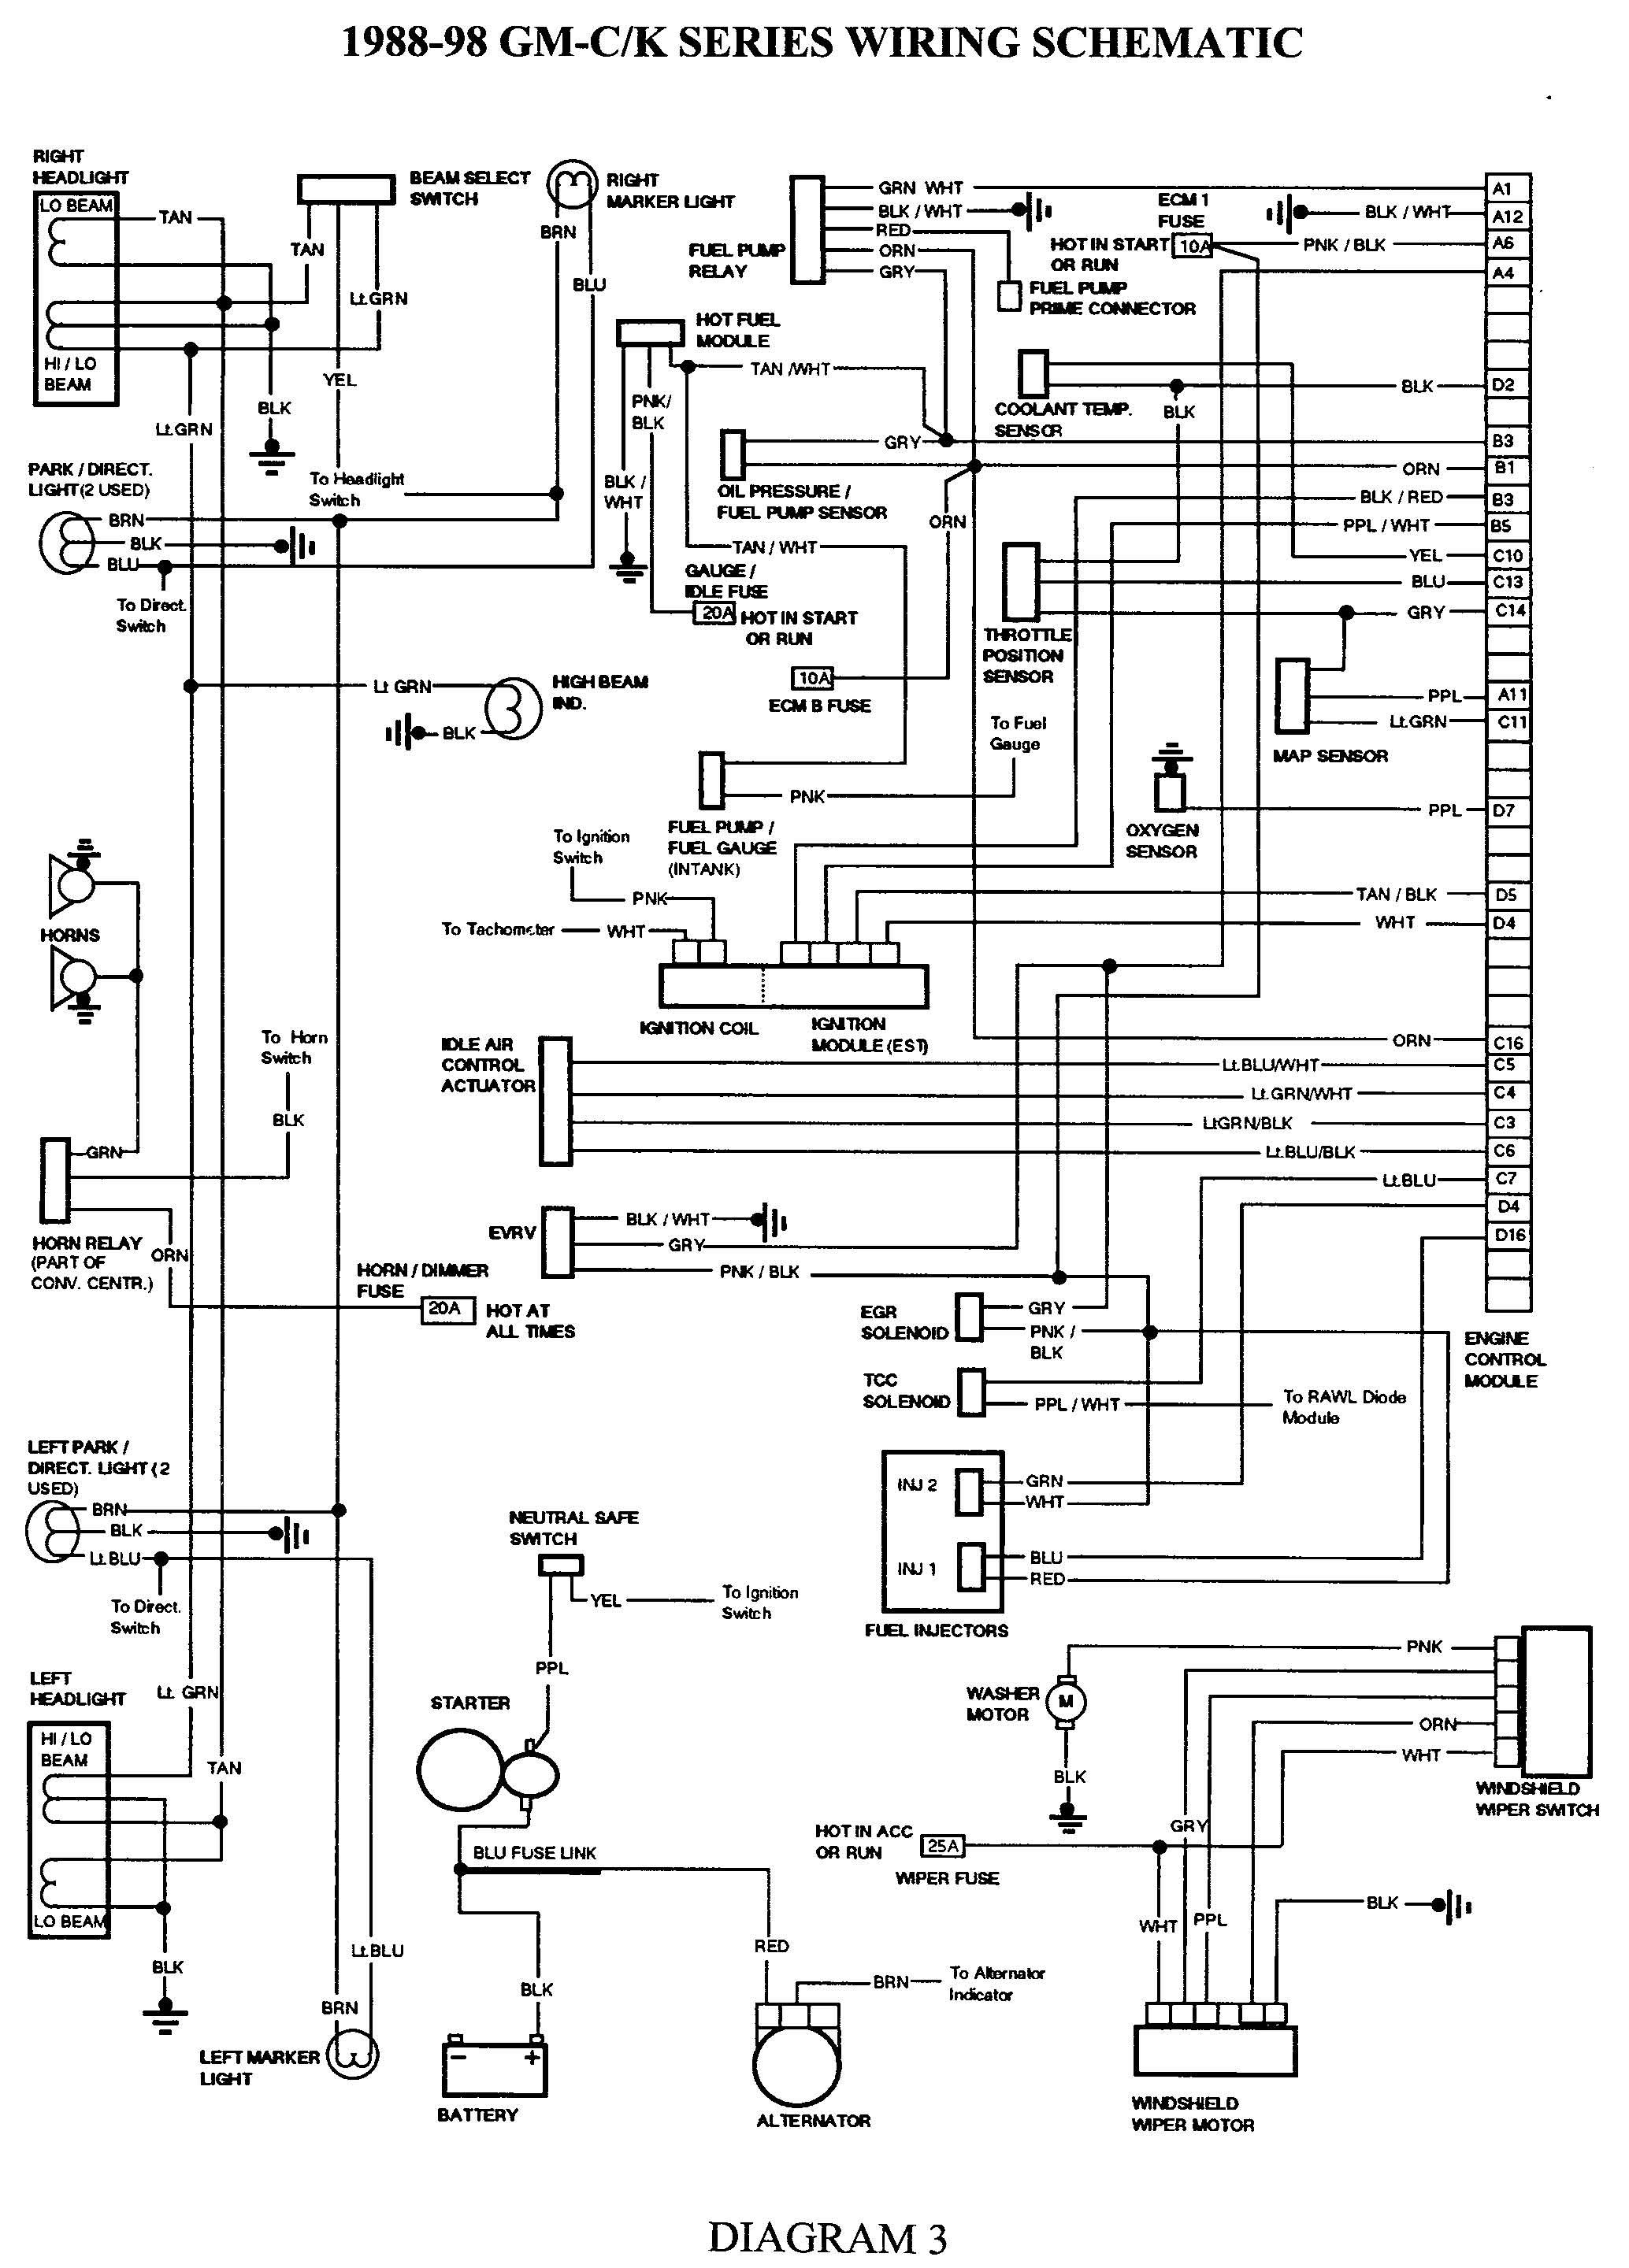 Tahoe Fuel Sender Wiring Diagram on 98 tahoe transmission, 2007 tahoe wiring diagram, 98 tahoe cooling system, 98 tahoe wire harness, 98 tahoe fuel pump, 98 tahoe fuel system, 98 tahoe engine diagram, 99 tahoe wiring diagram, 98 tahoe oil pump, 98 tahoe fuel tank, 96 tahoe wiring diagram, 98 tahoe steering diagram, 98 tahoe suspension diagram, 98 tahoe relays diagram, chevy tahoe wiring diagram, 1998 tahoe wiring diagram, 1997 tahoe wiring diagram, 98 tahoe ignition switch, 98 tahoe fuse diagram,